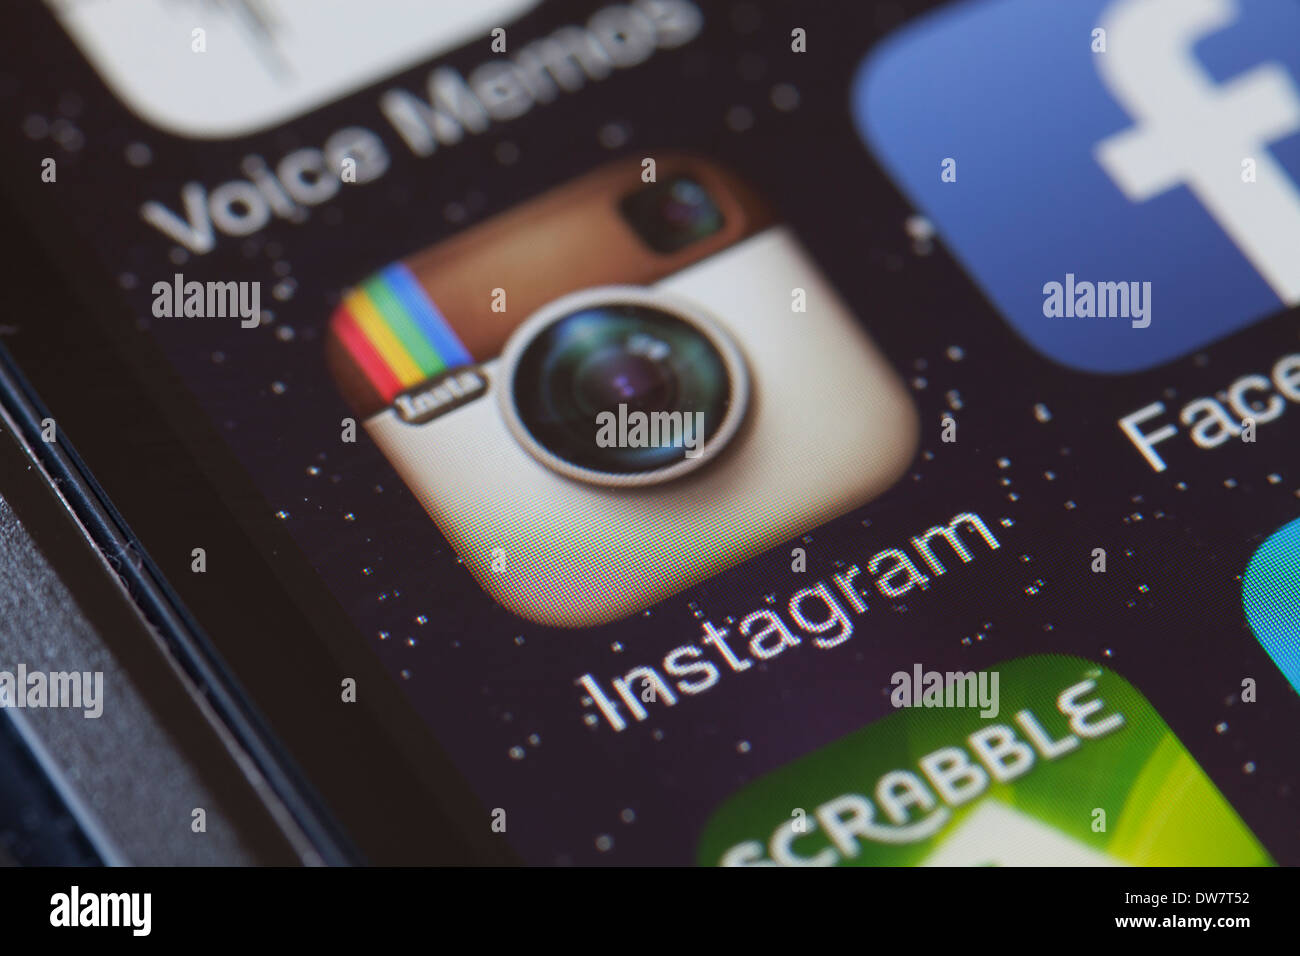 Instagram app icon on mobile phone. - Stock Image